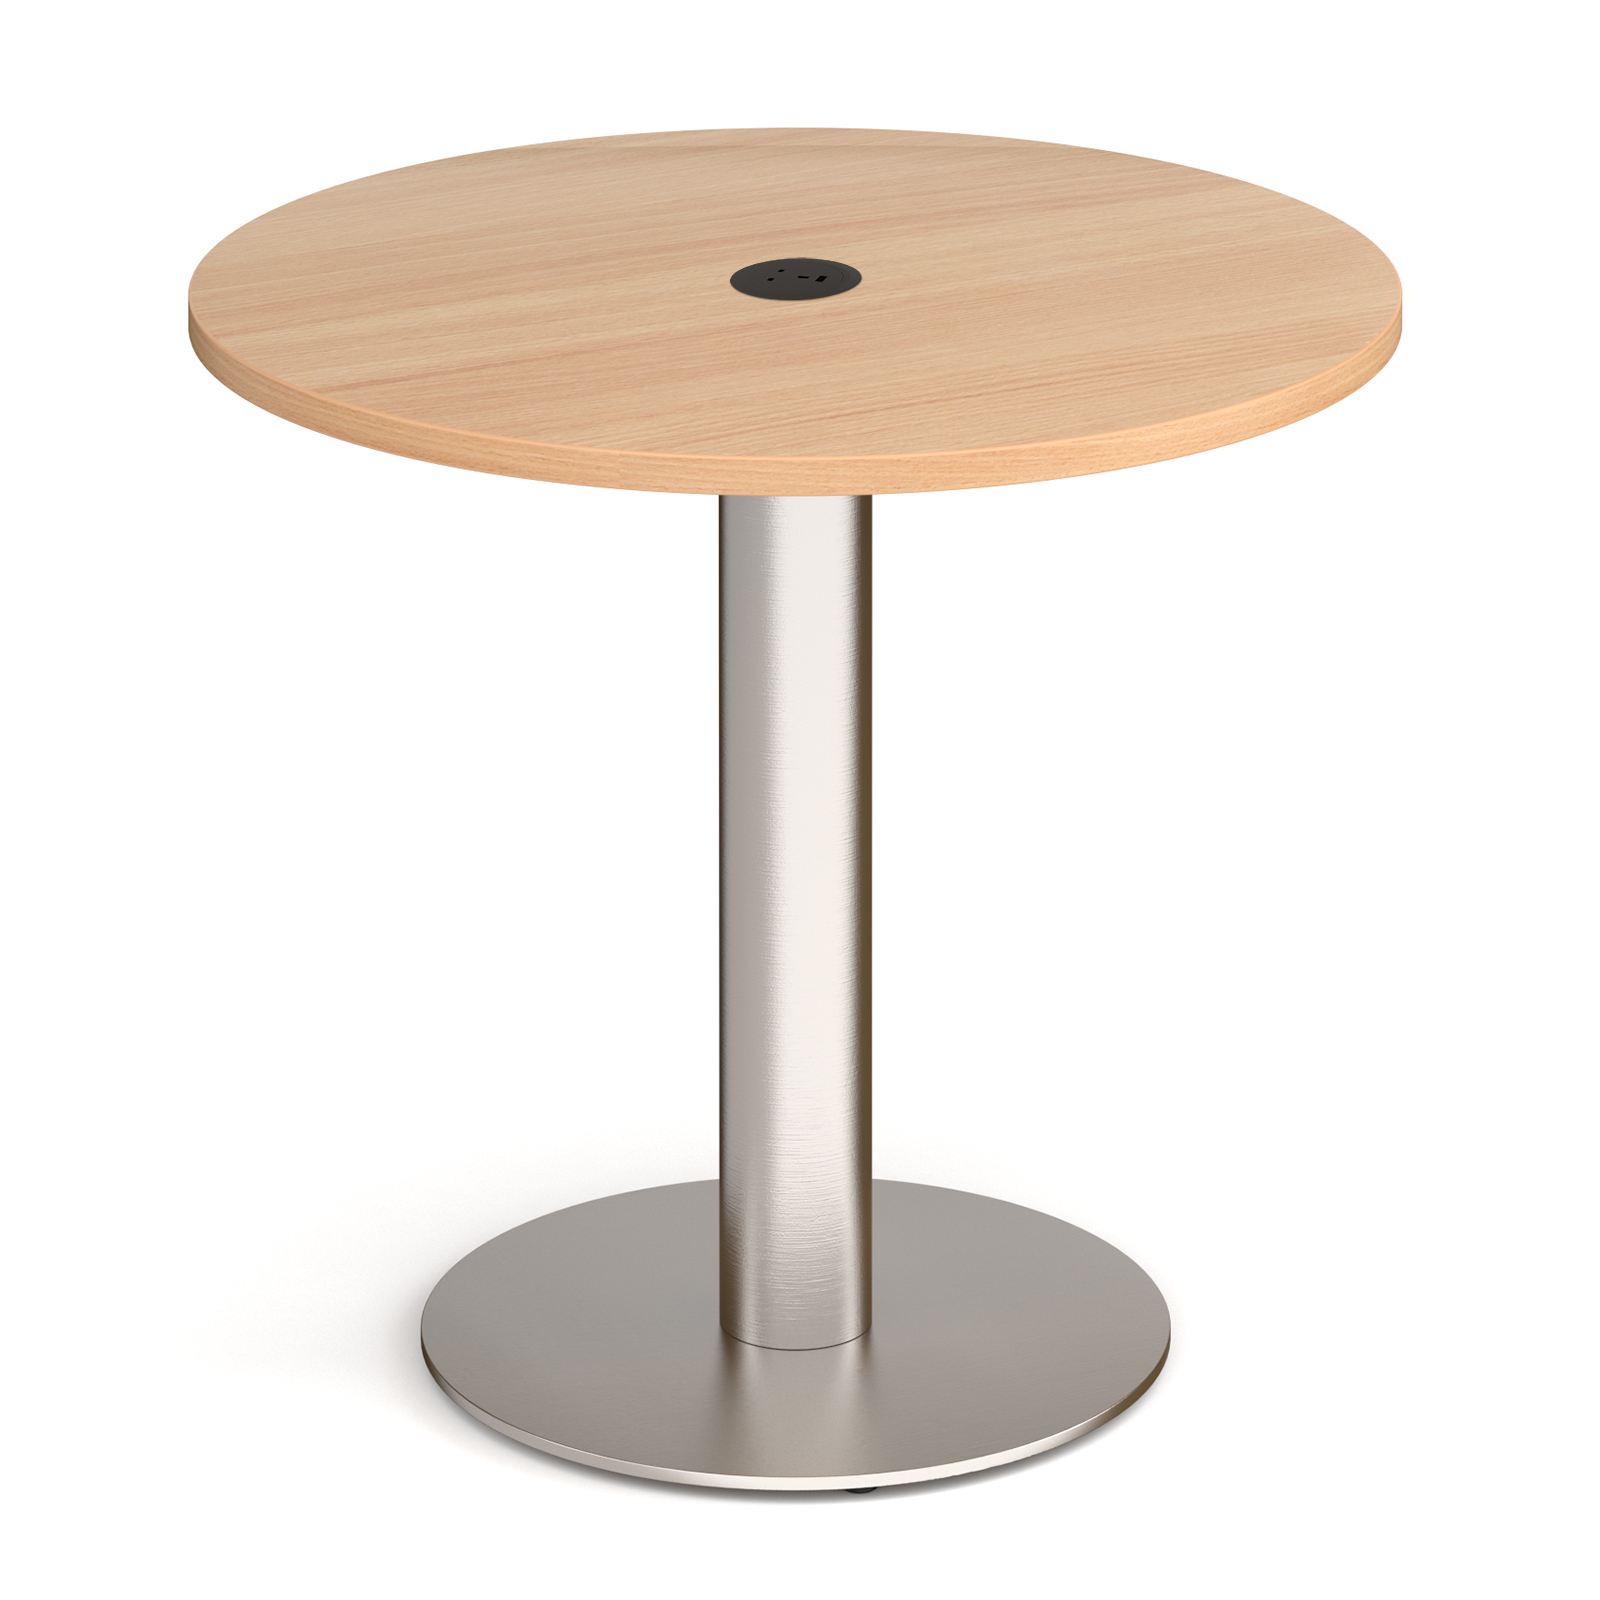 Monza circular dining table with power module